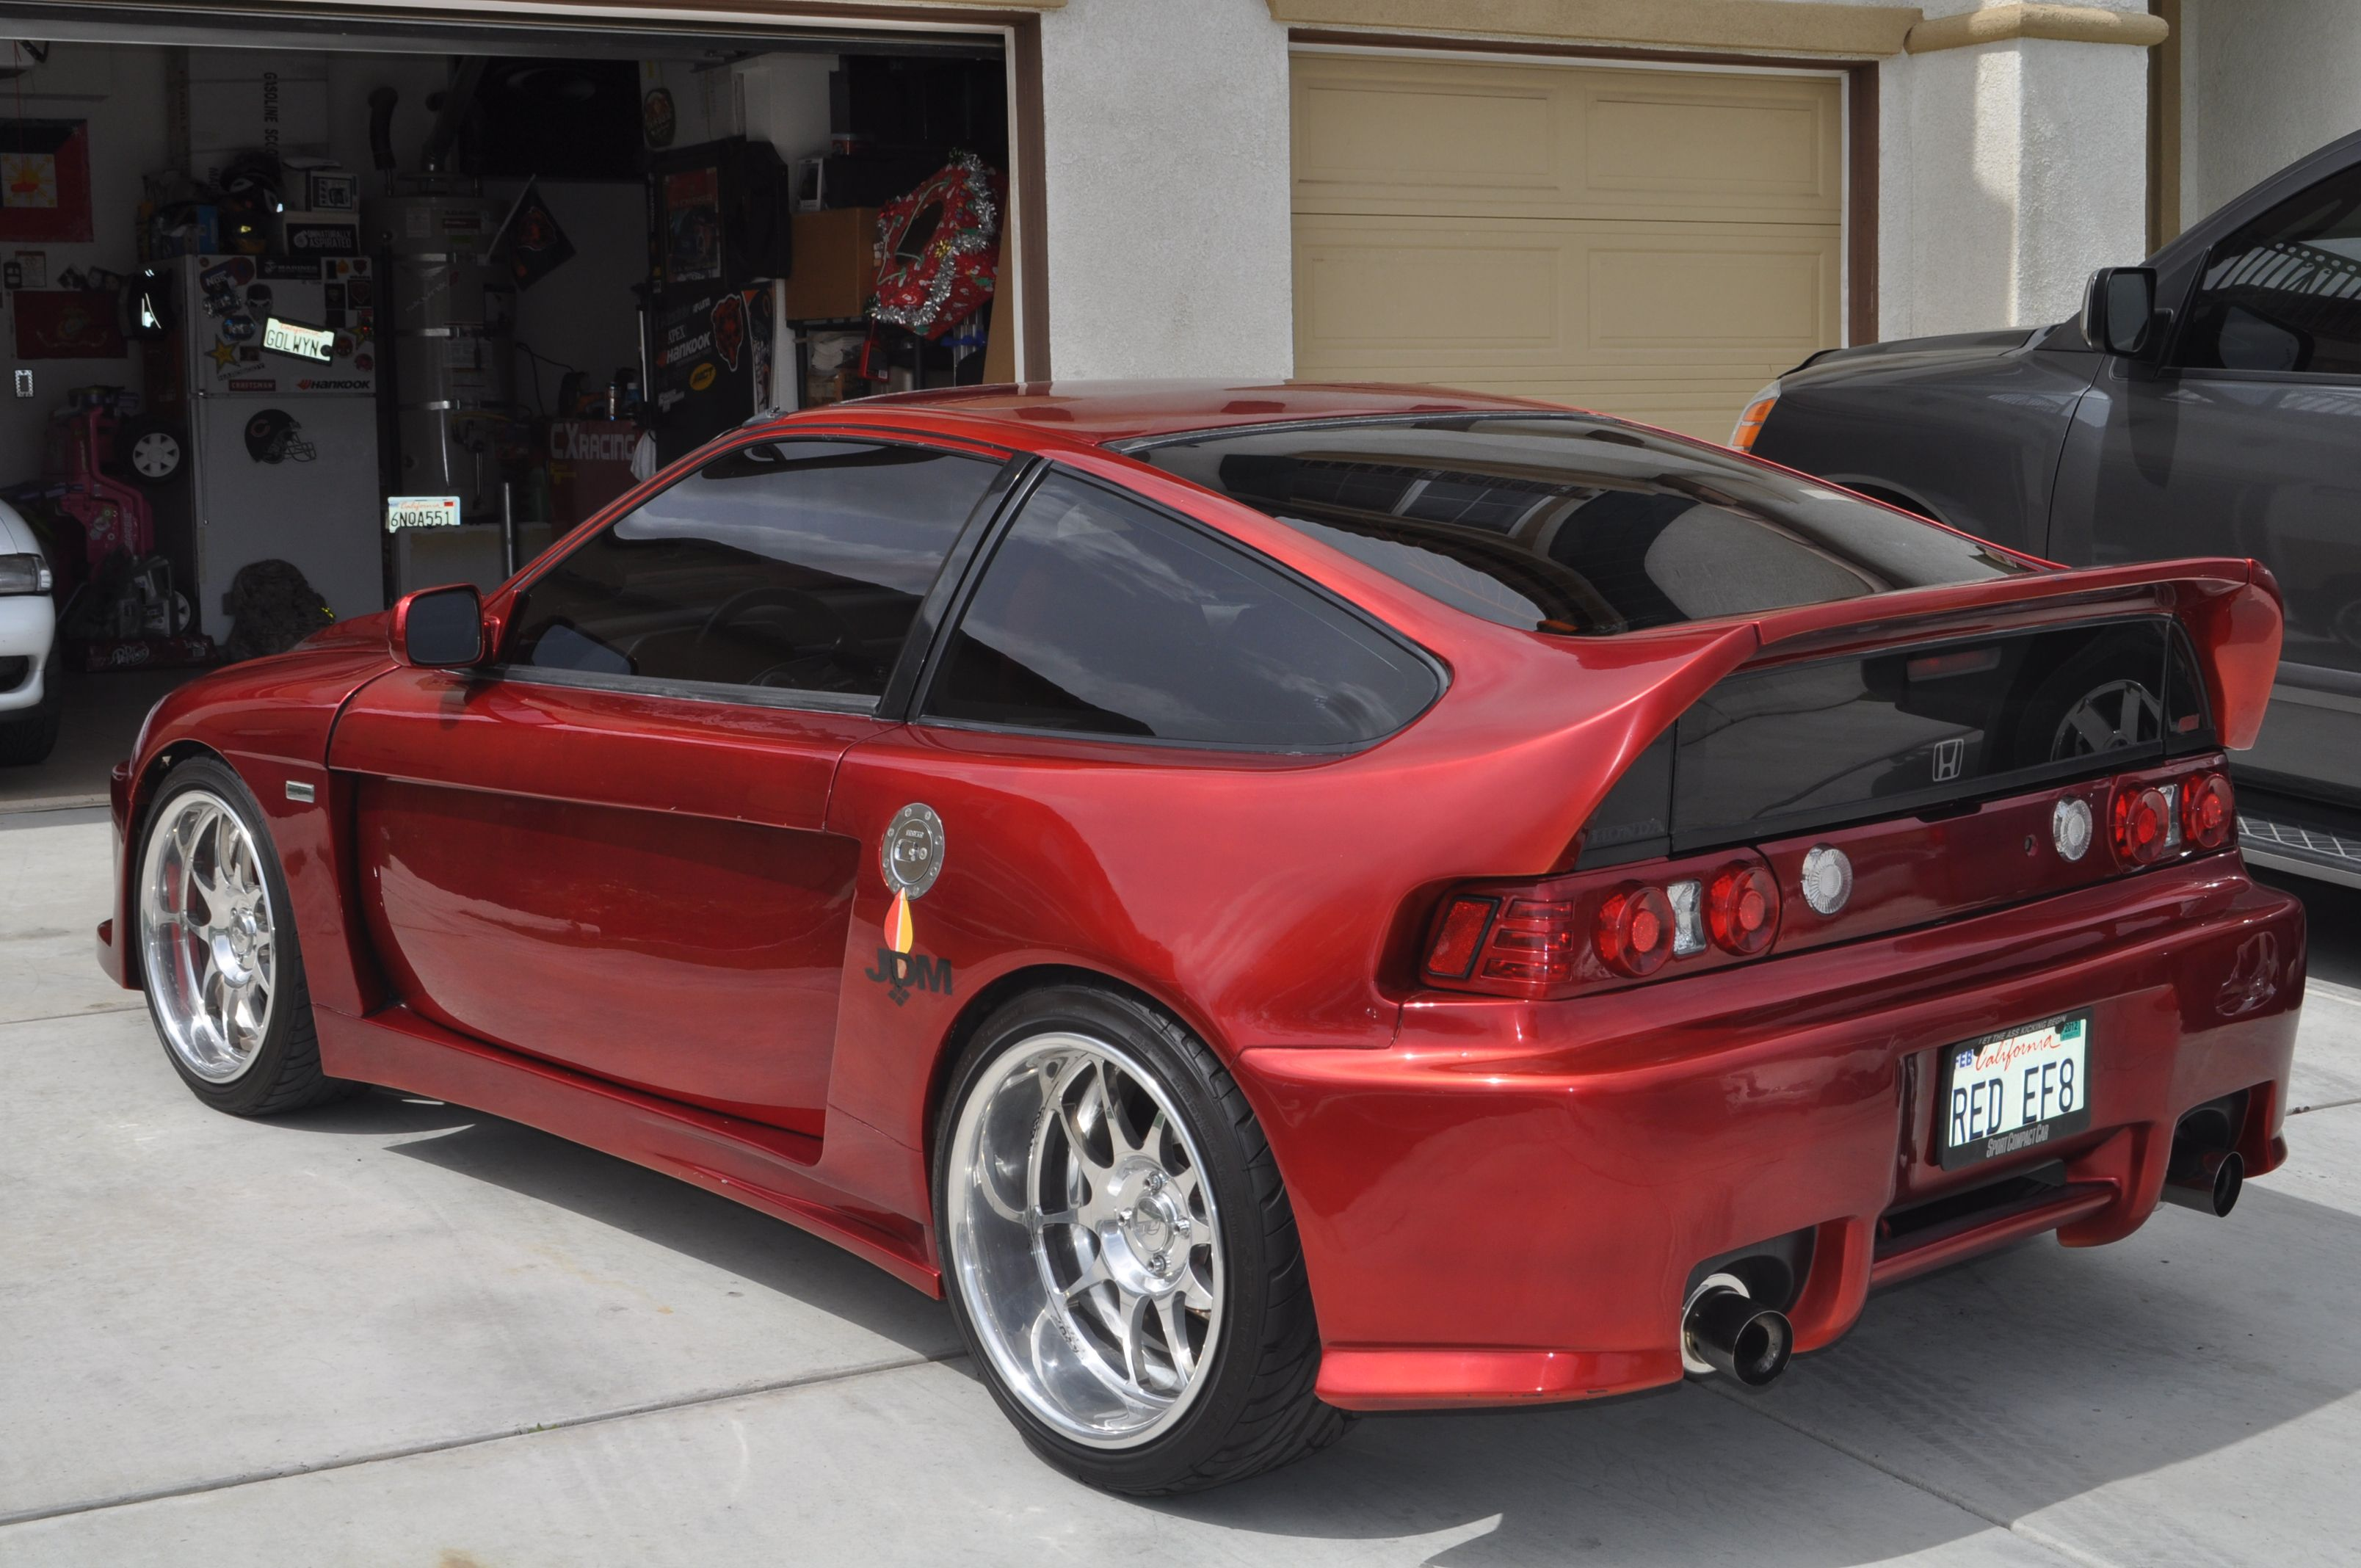 datass my widebody crx si my toys honda crx honda. Black Bedroom Furniture Sets. Home Design Ideas